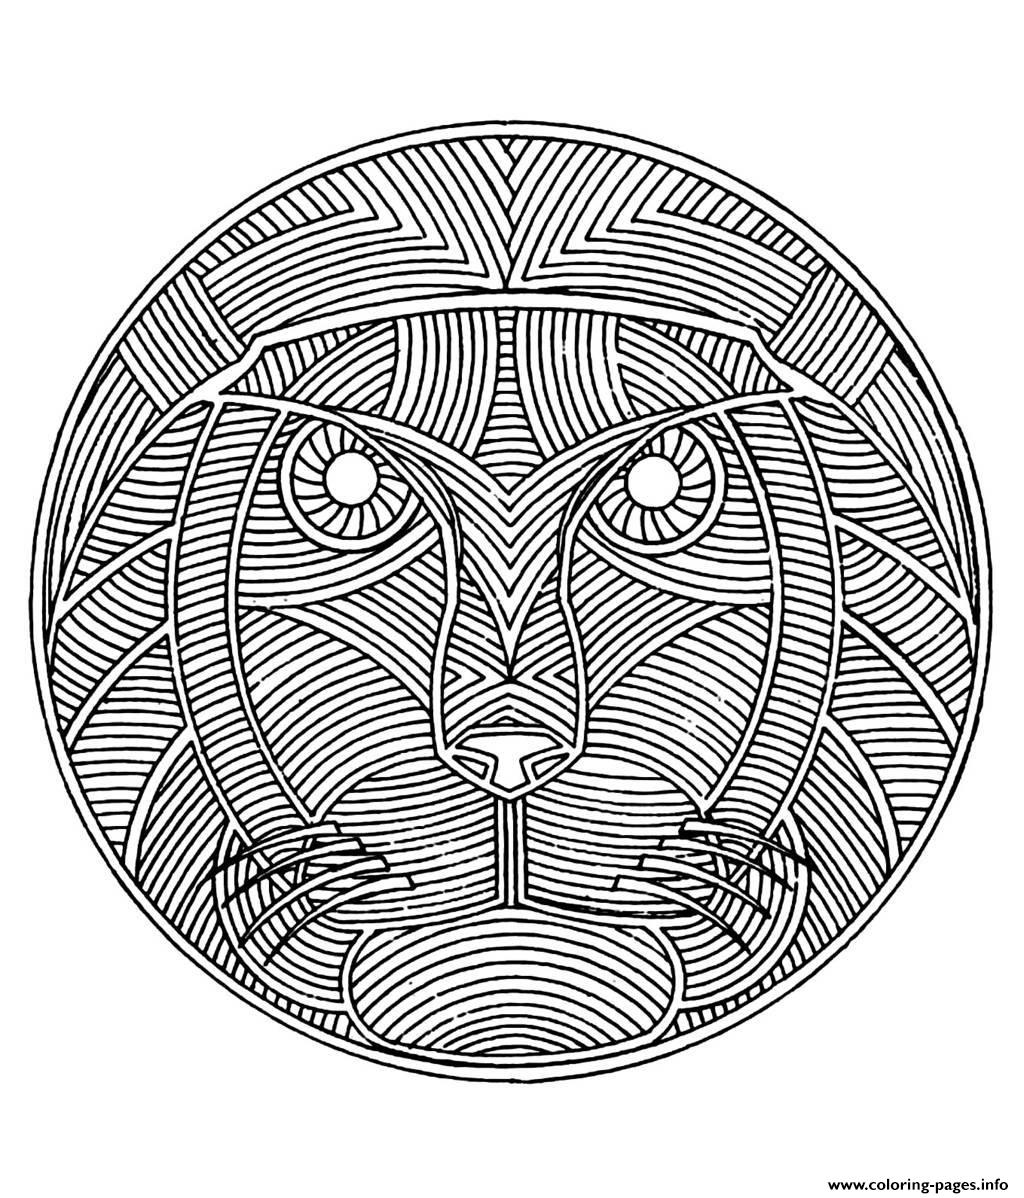 Free Mandala Difficult Adult To Print Lion  coloring pages